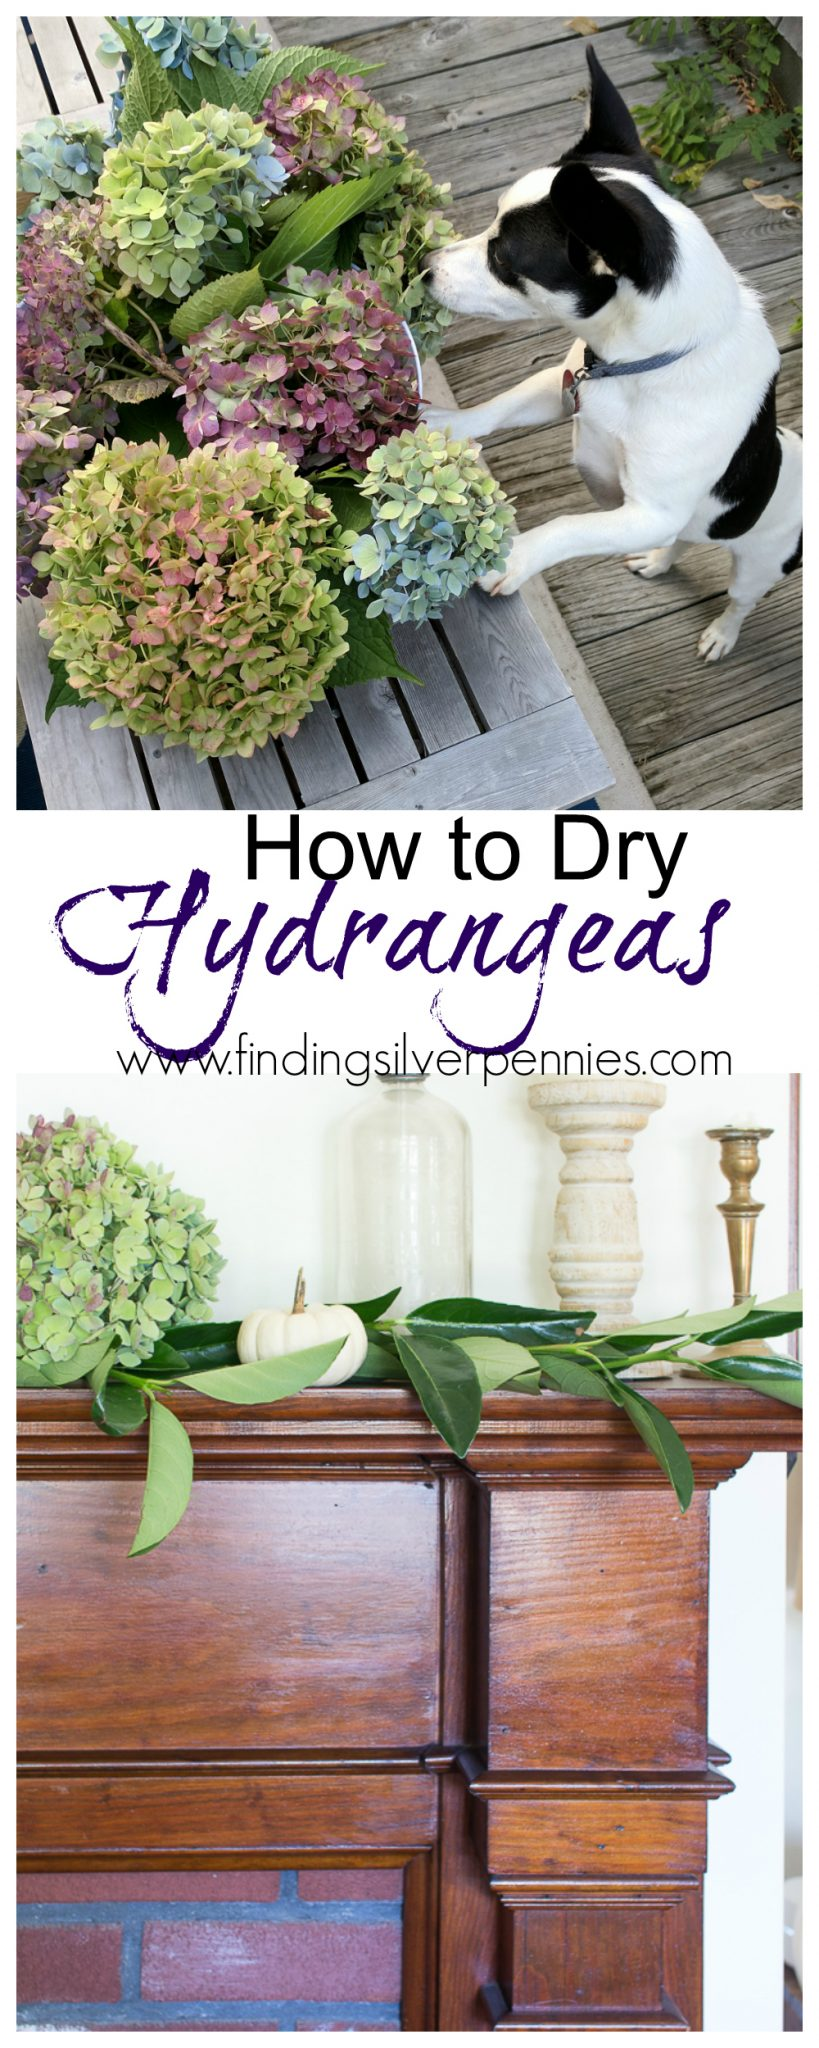 How to Dry Hydrangeas to use them in your home for decorating